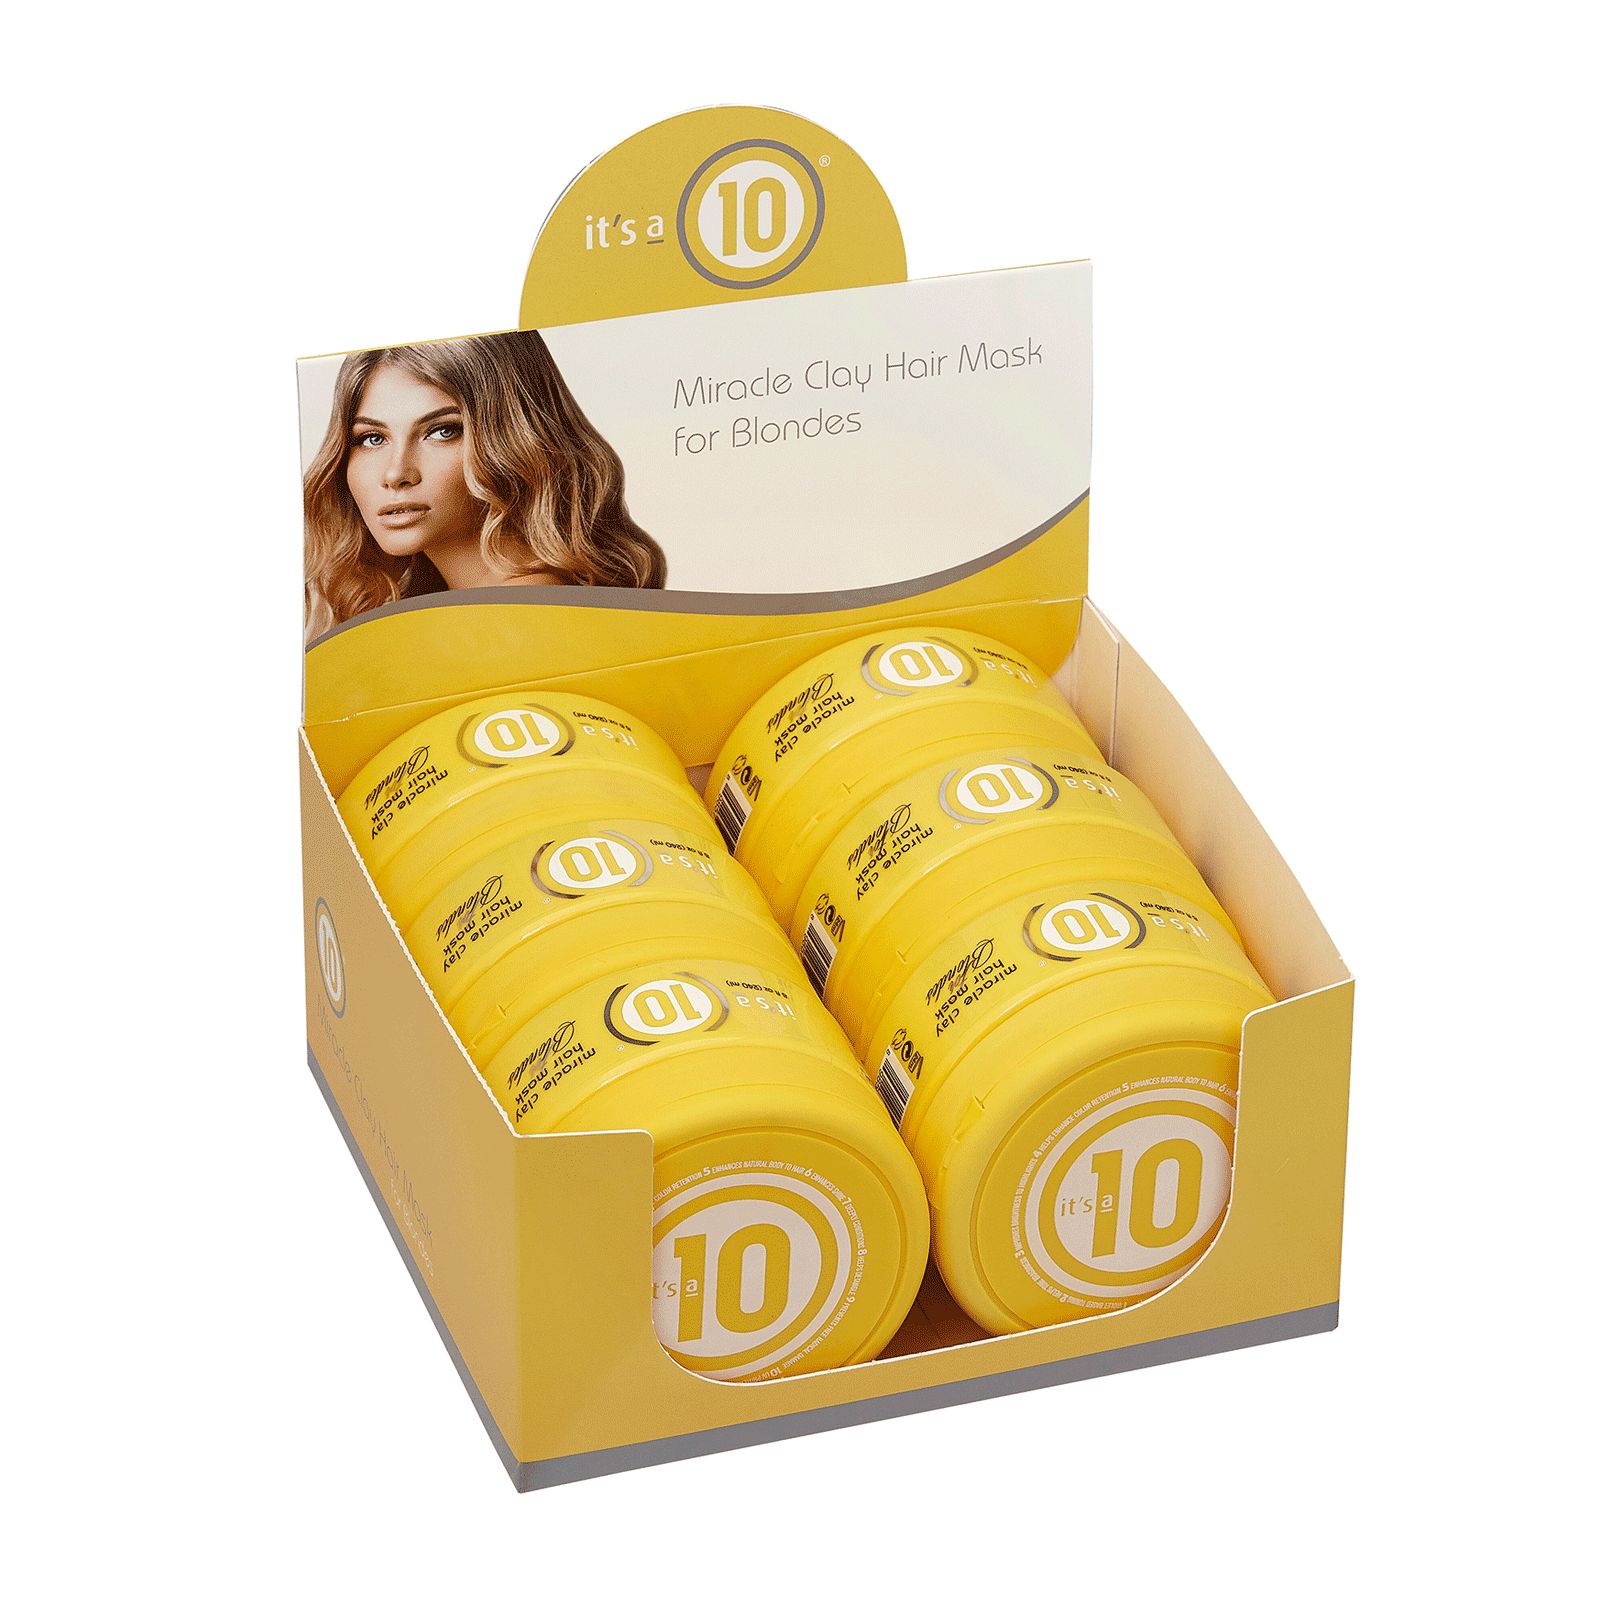 It's A Ten Blonde Clay Hair Mask - 5 Piece Display